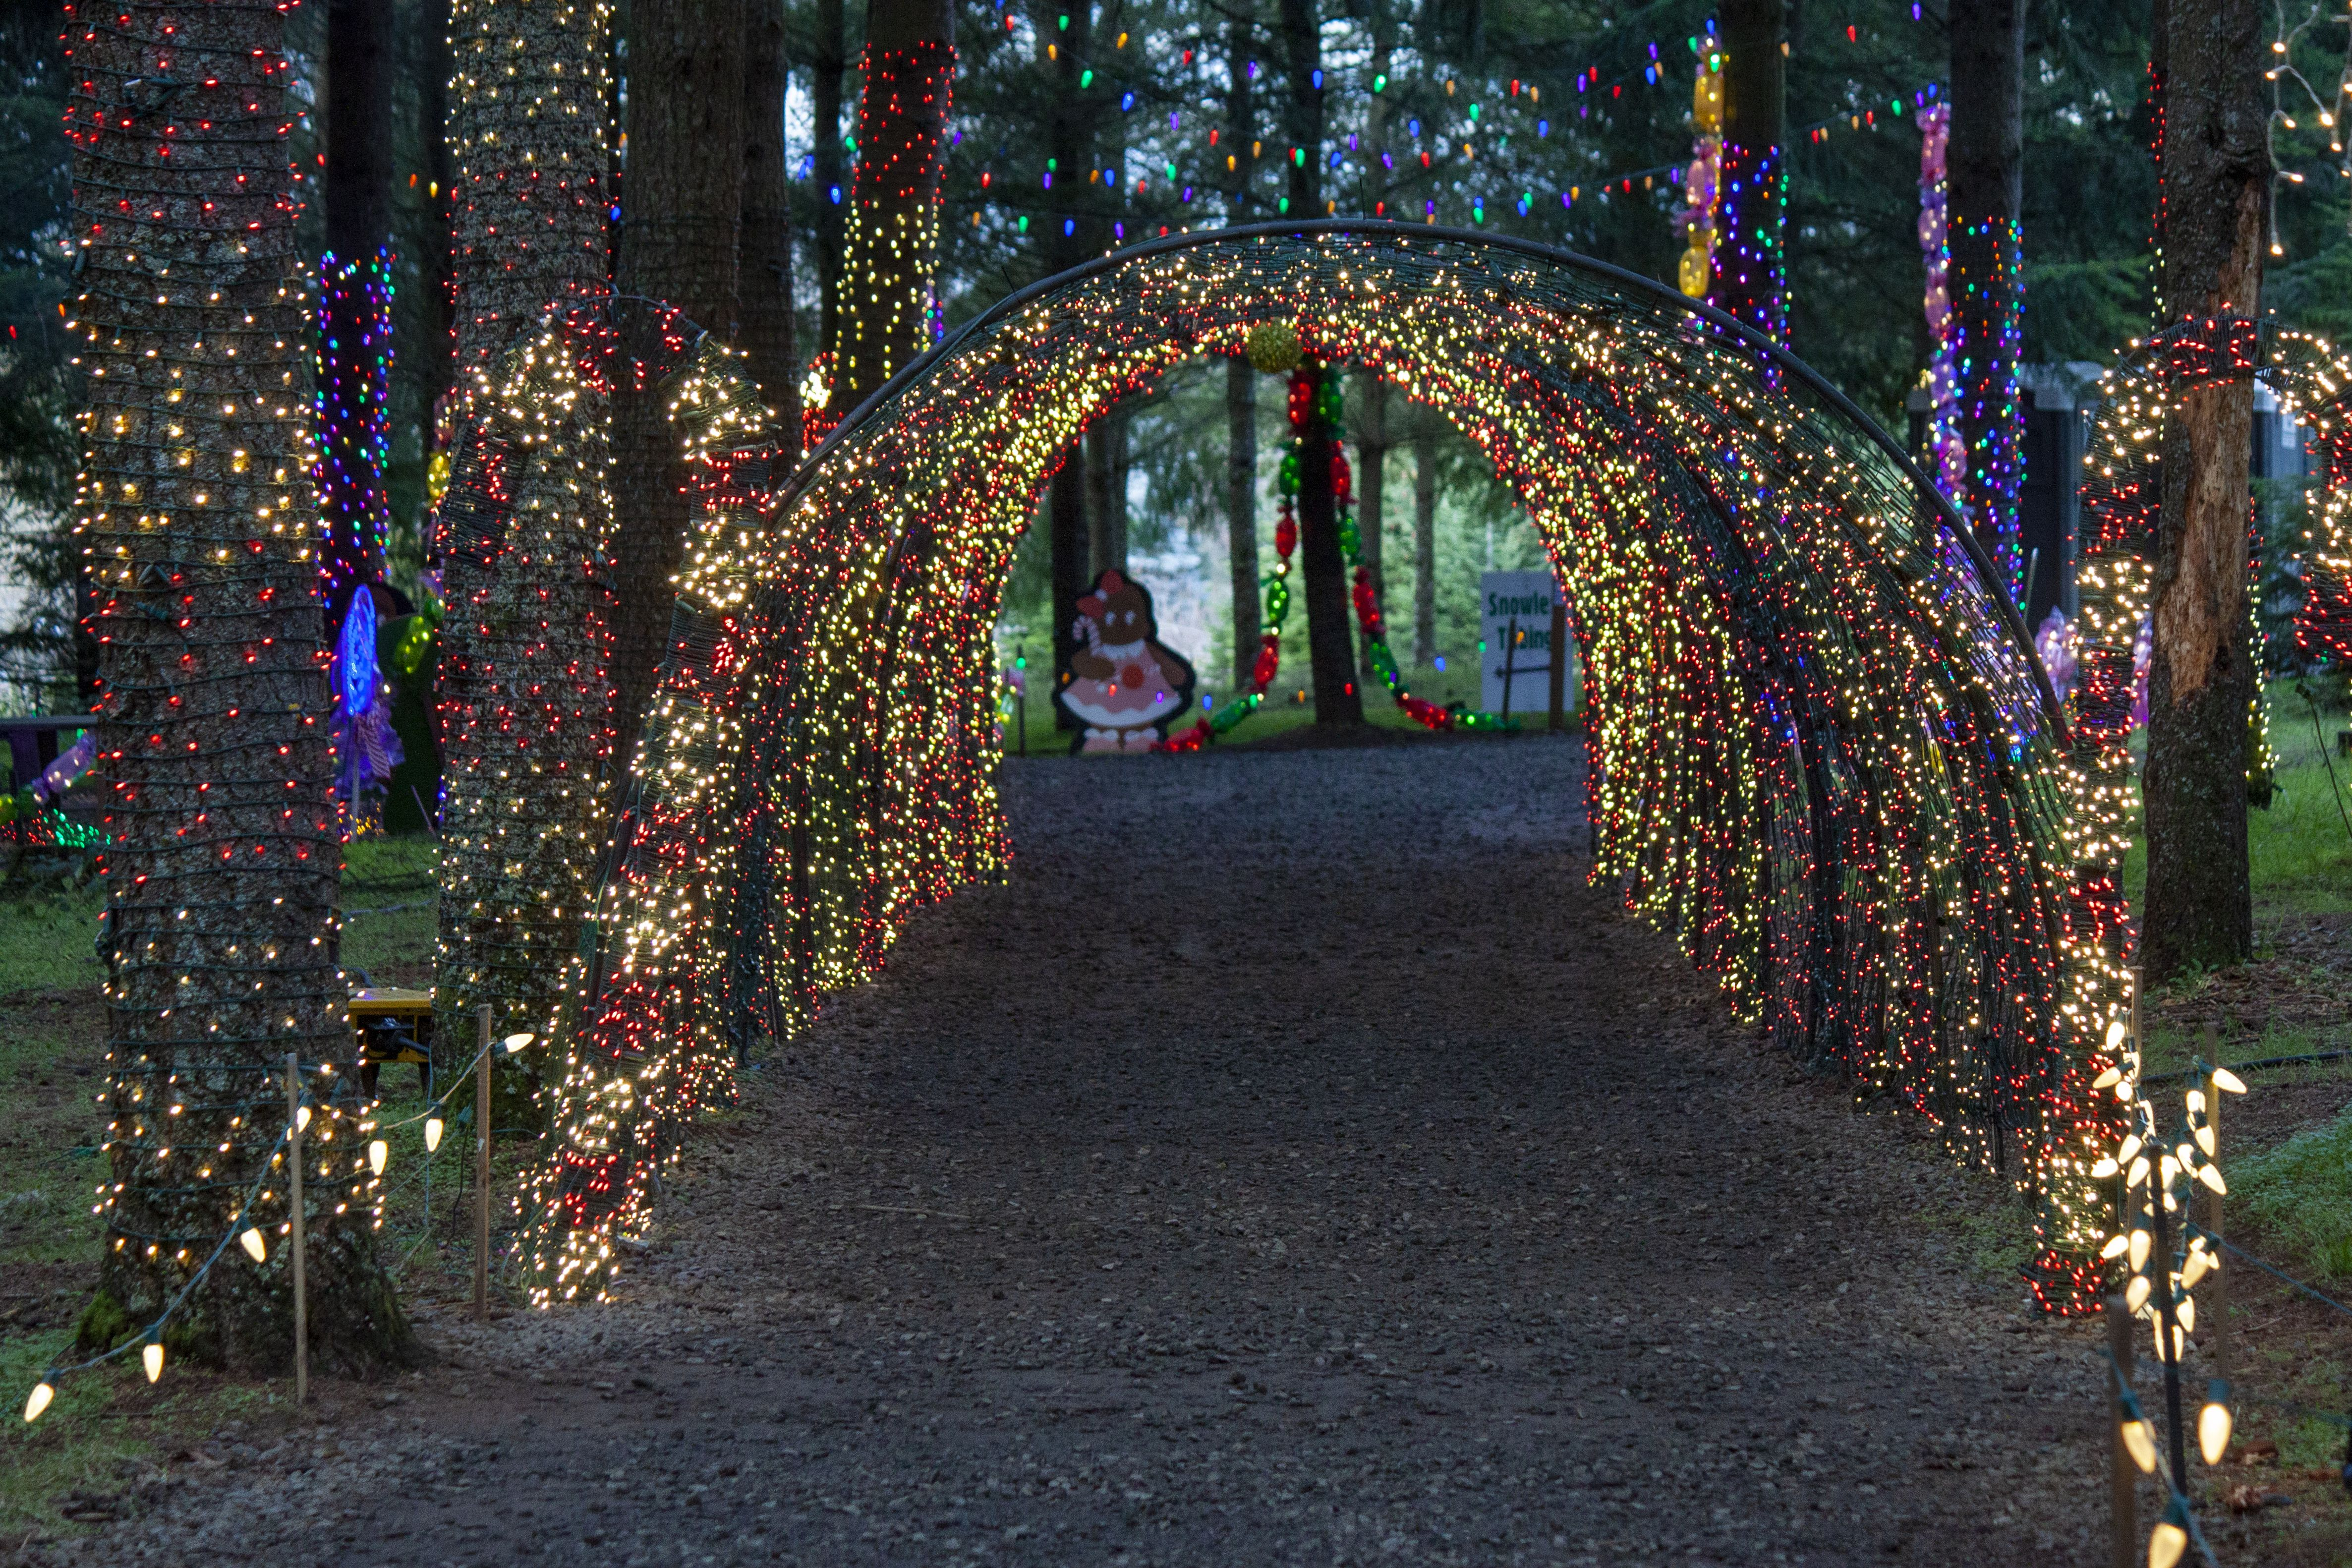 Over A Million Christmas Lights in 2020 Holiday festival